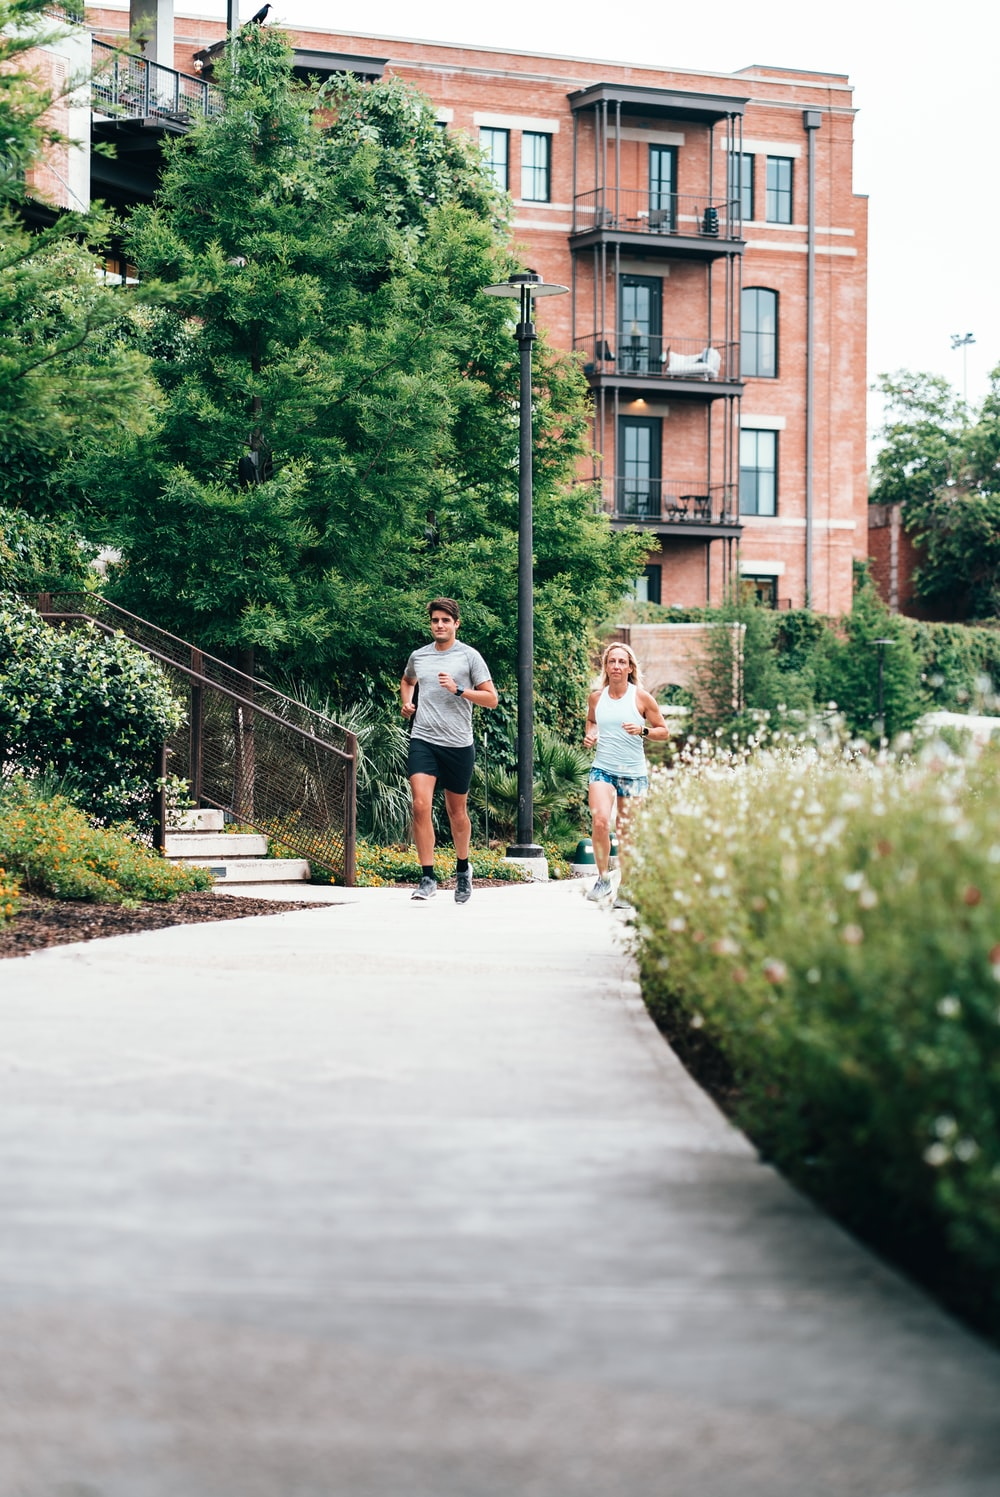 man and woman on path jogging